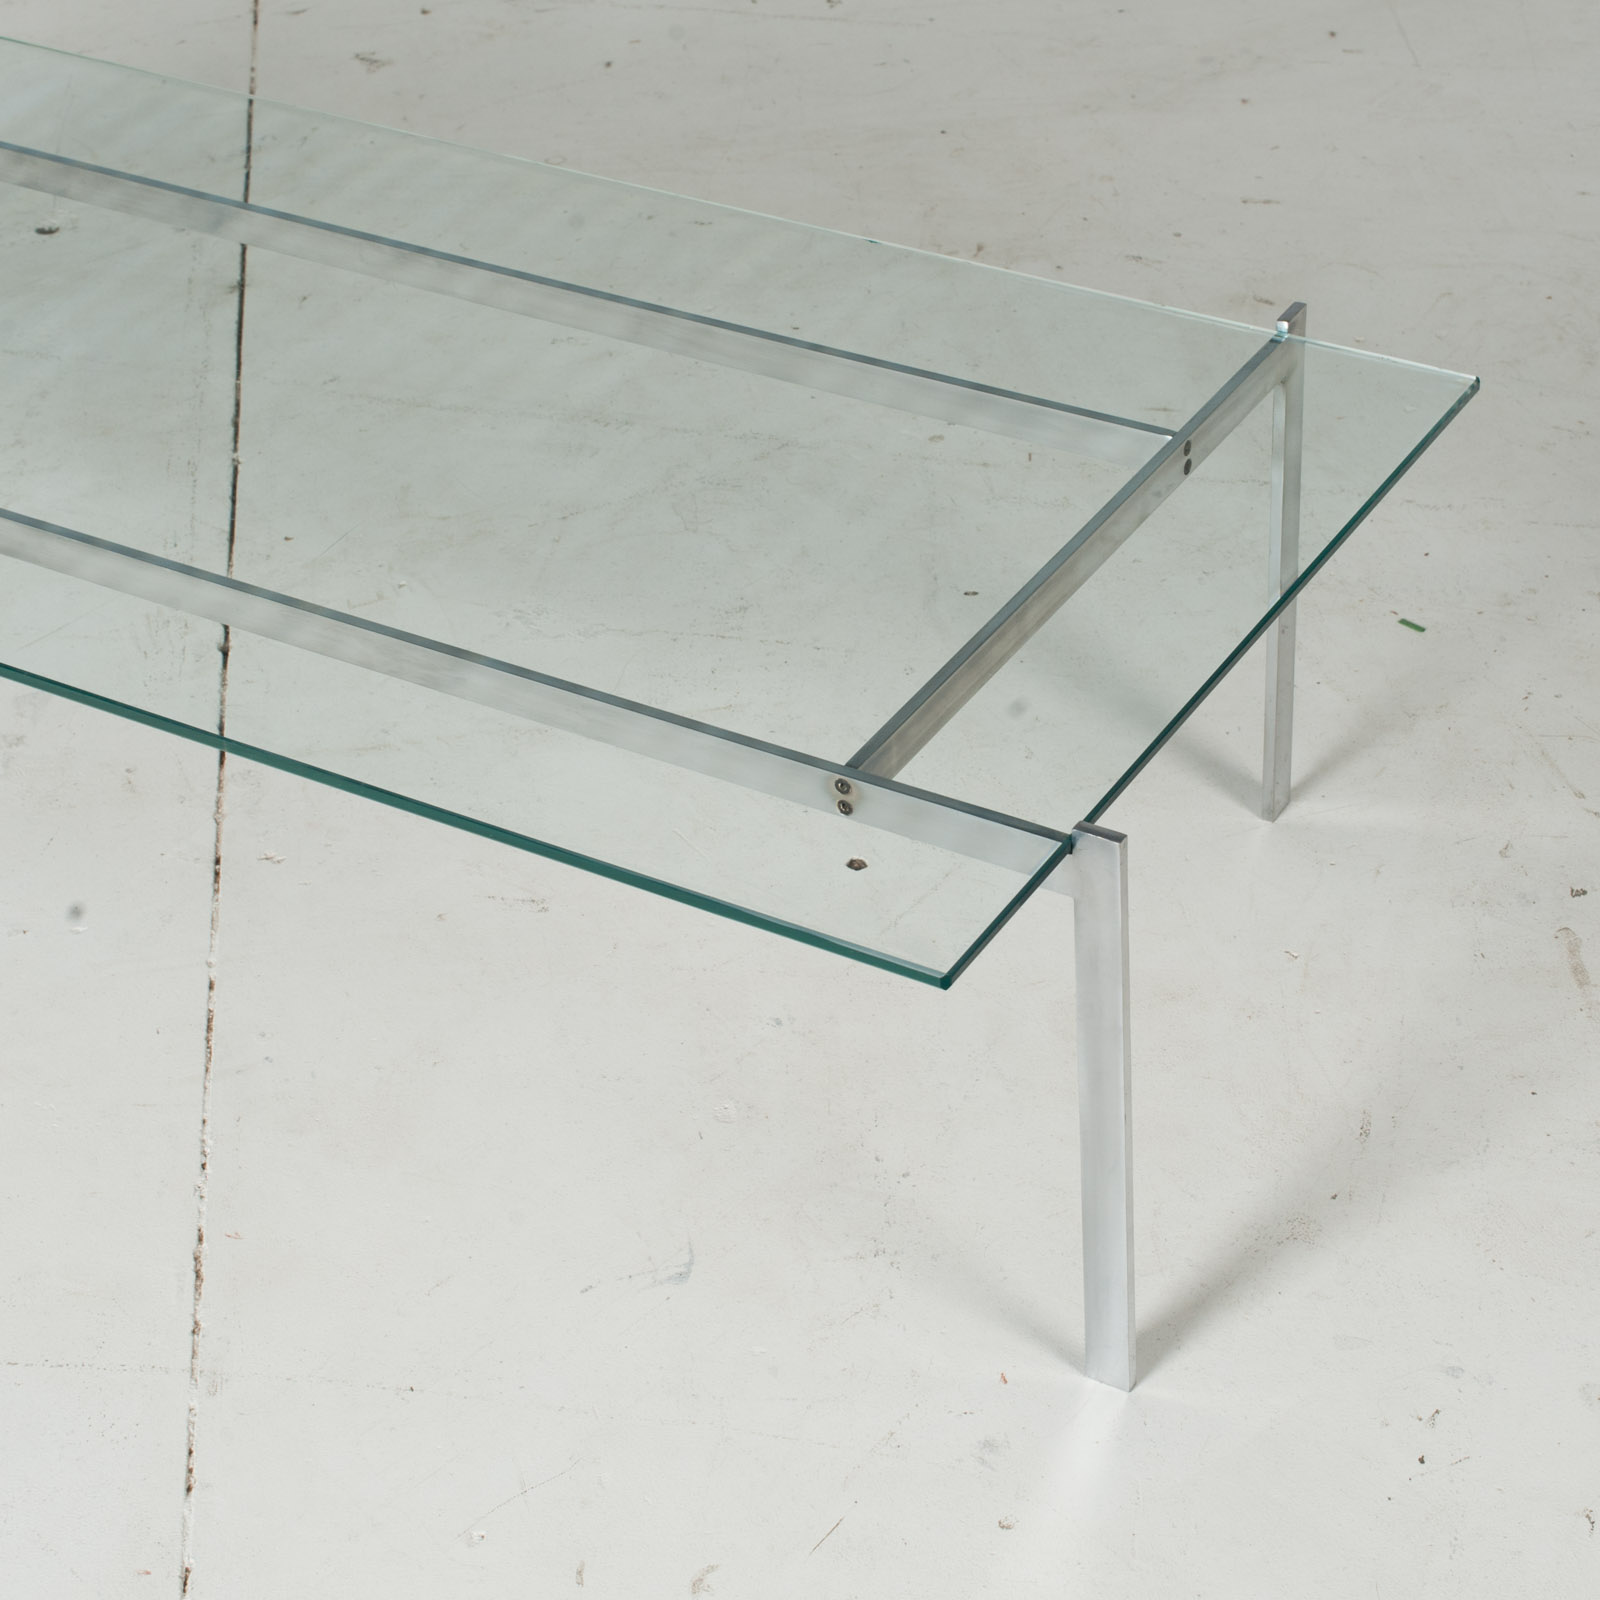 Coffee Table In The Style Of Poul Kjaerholm With Chrome And Glass, 1960s, Netherlands6